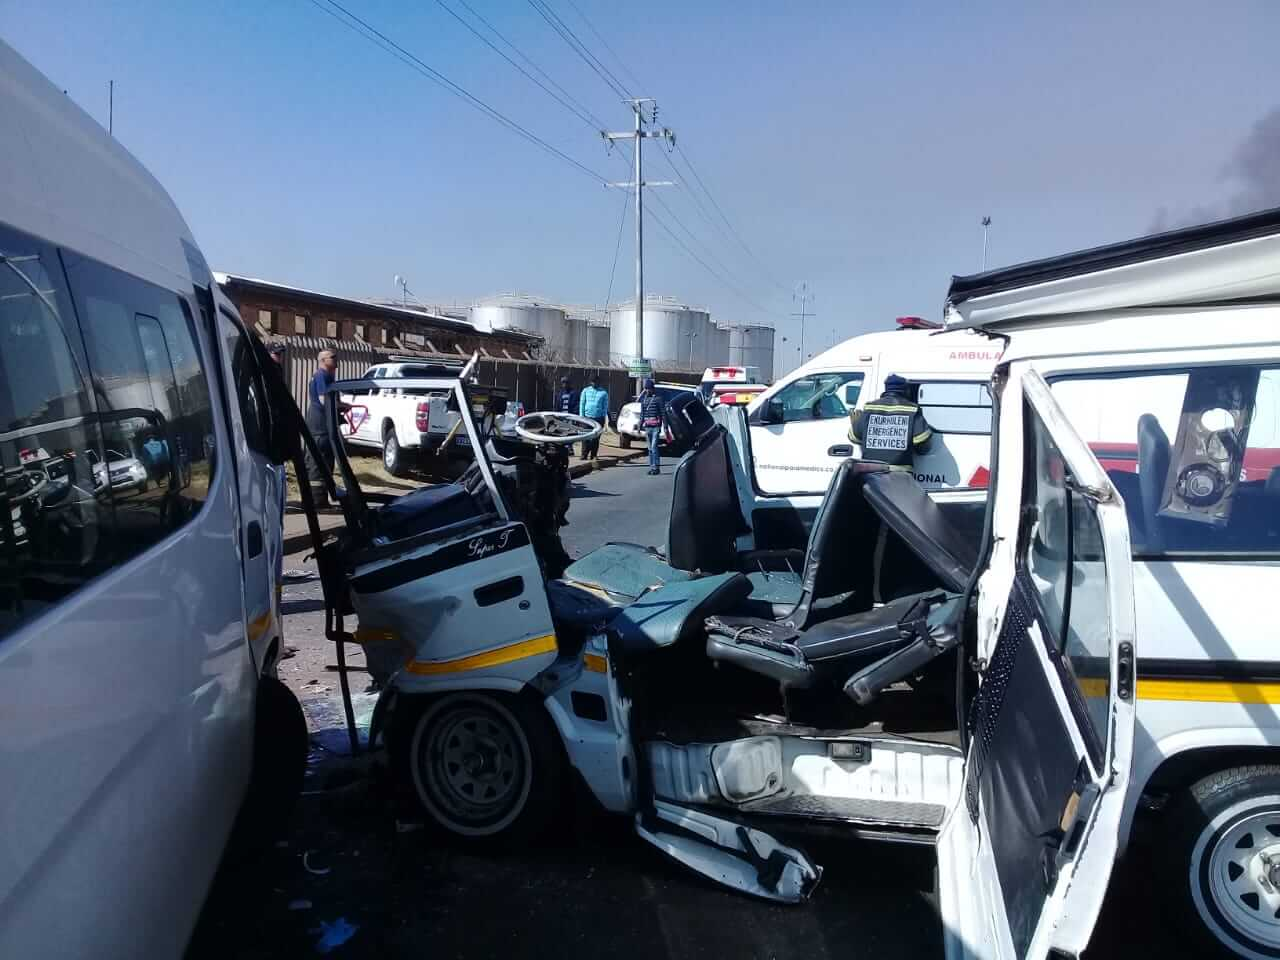 WhatsApp-Image-2018-07-05-at-12.16.48  [ALRODE] 15 people injured in multiple vehicle collision – ER24 WhatsApp Image 2018 07 05 at 12